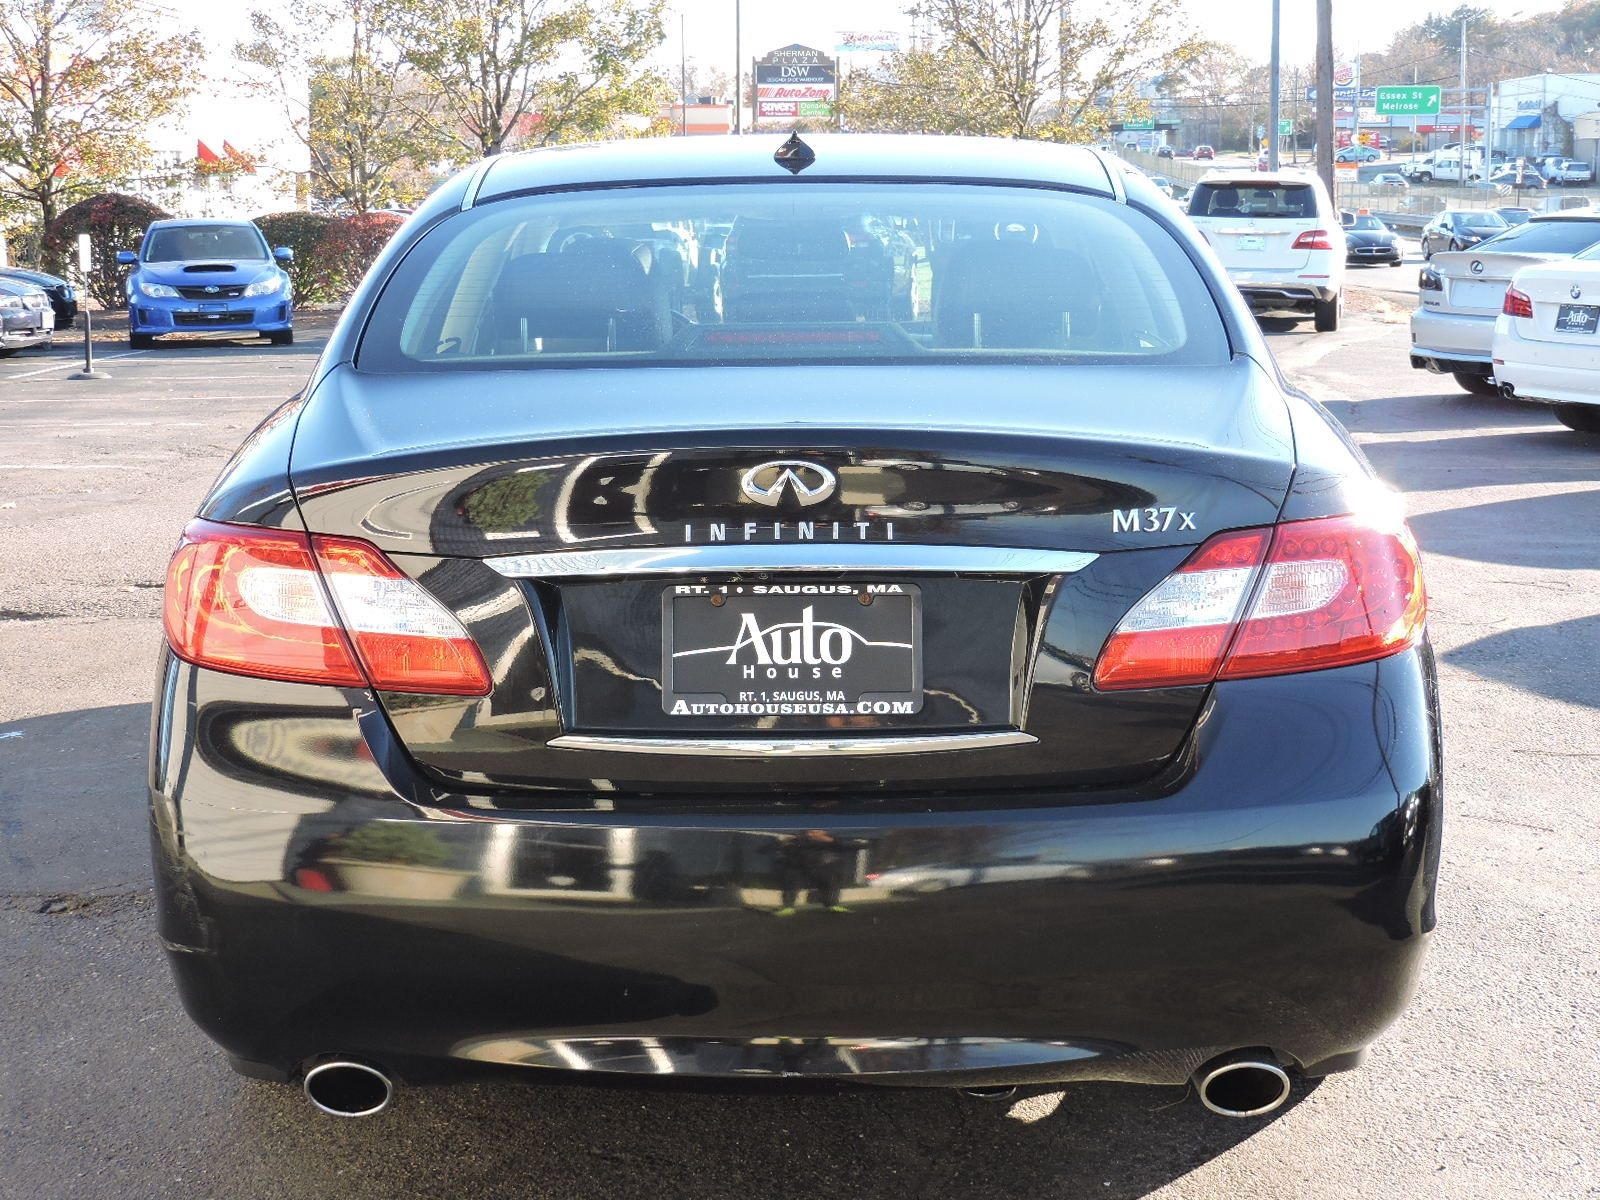 2011 Infiniti M37X - All Wheel Drive - Technology Package - Navigation